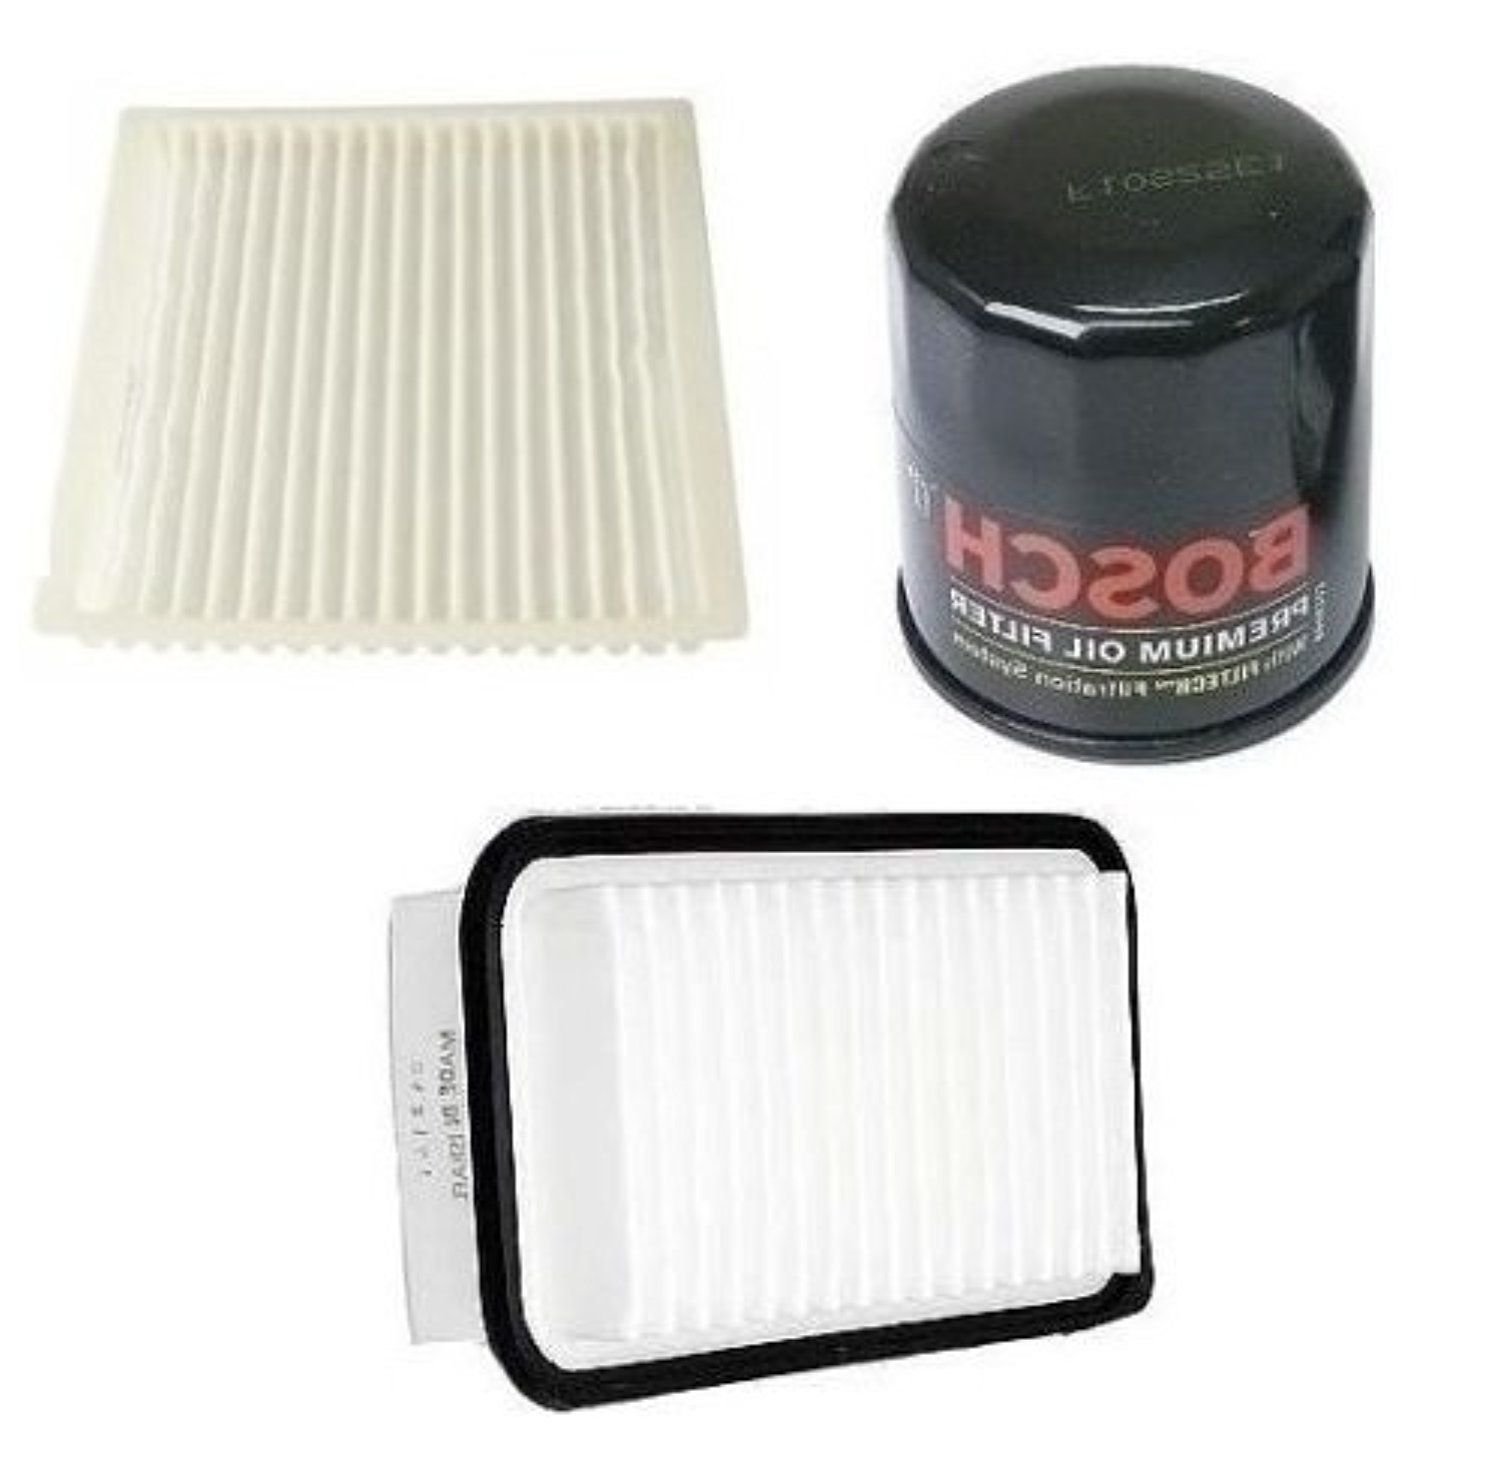 Opparts Bosch Oil Filter Cabin Air Filter Scion Xa 2004 2006 1 5l Base Hatchback Awesome Products Selected By Anna Ch Cabin Air Filter Oil Filter Scion Xb